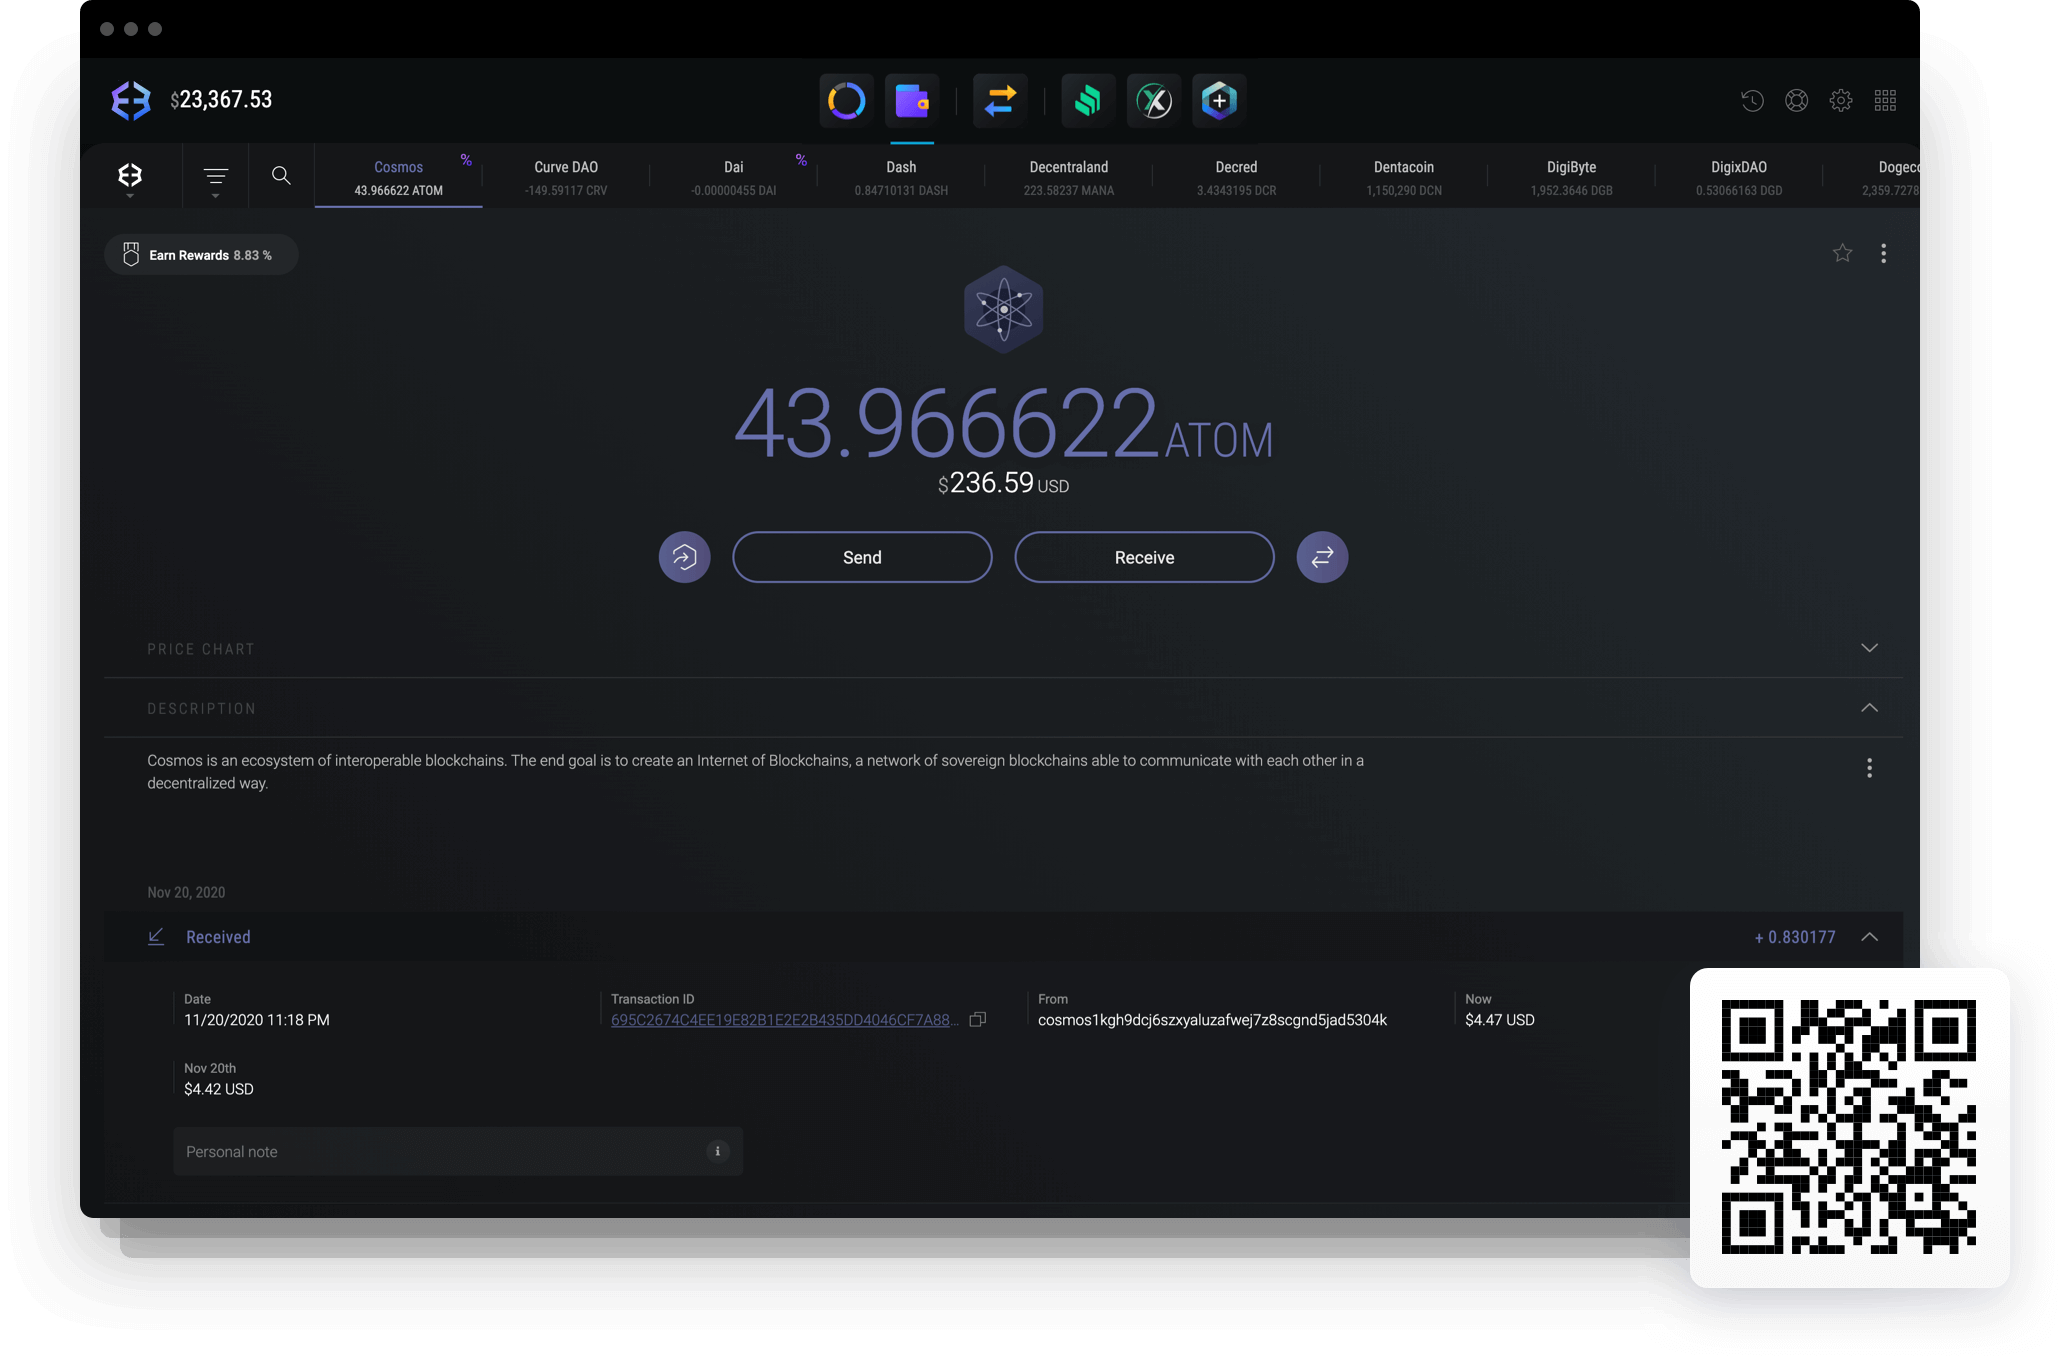 Send and receive Cosmos with Exodus Cosmos wallet